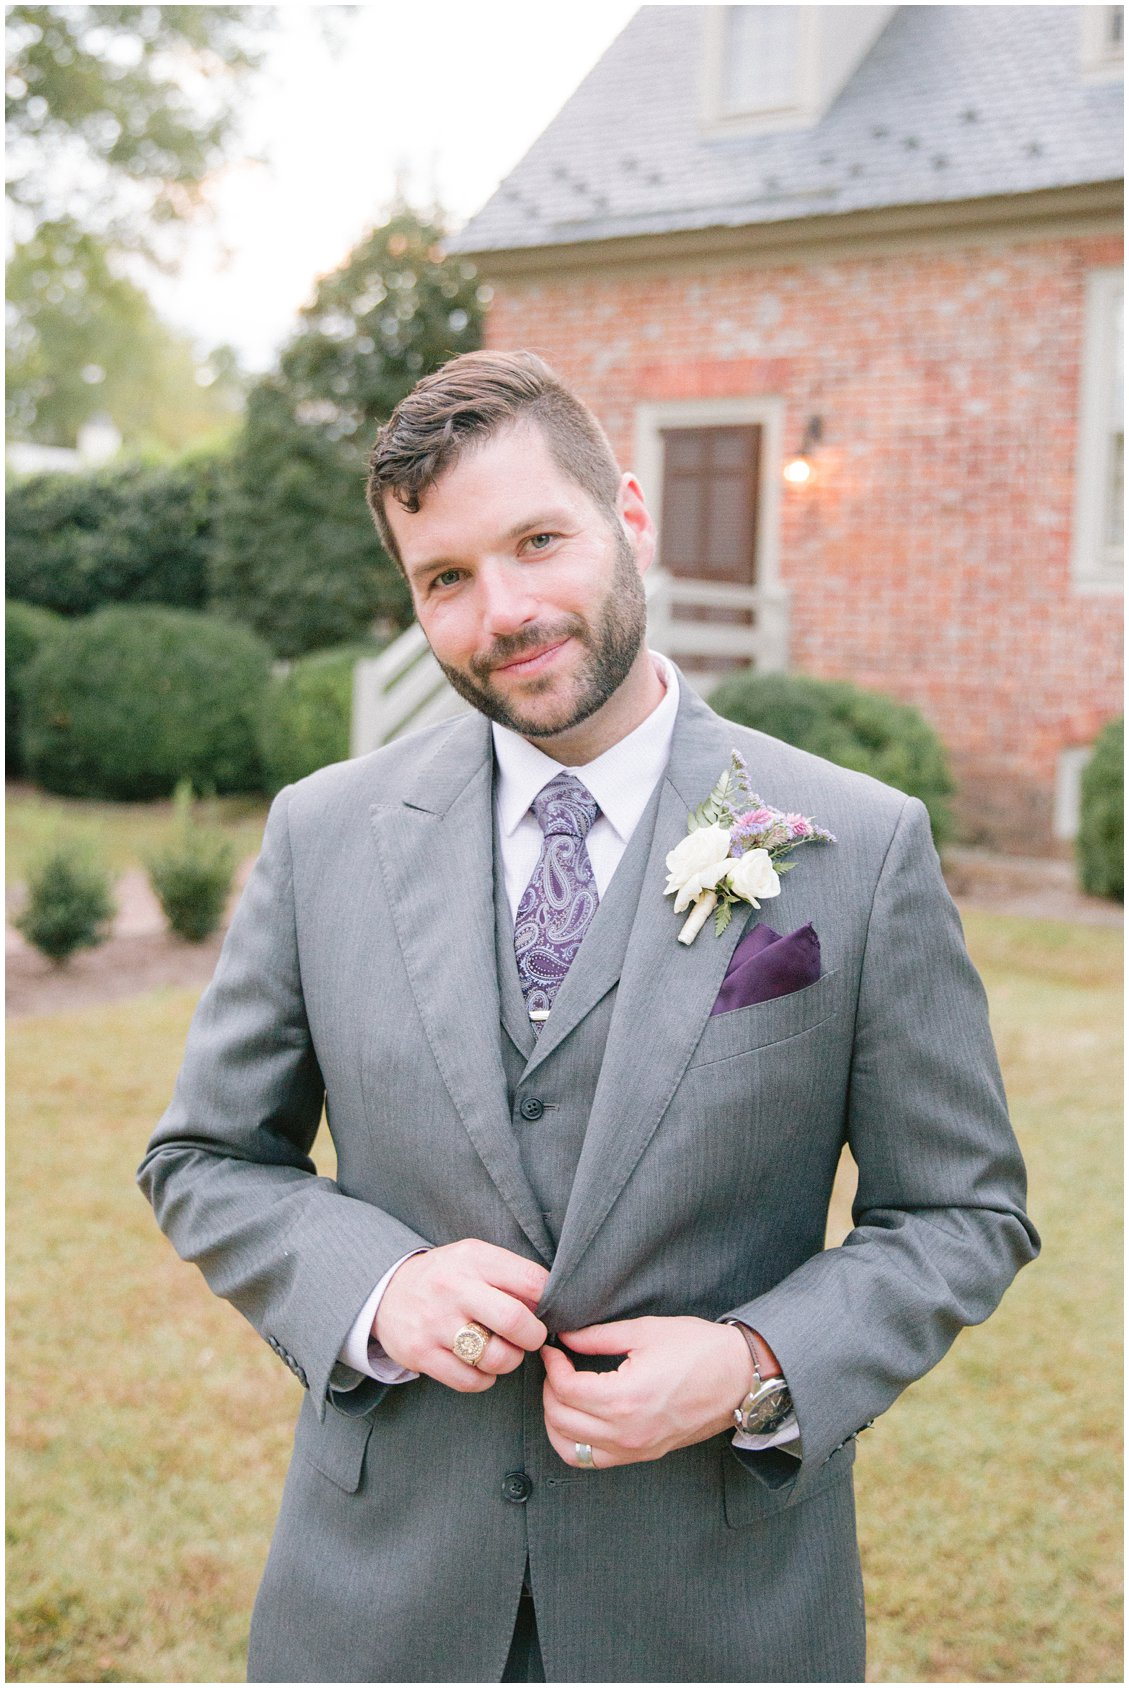 Groom attire for a romantic fall outdoor wedding at Seven Springs Farm & Manor captured by Tara & Stephen of Pattengale Photography